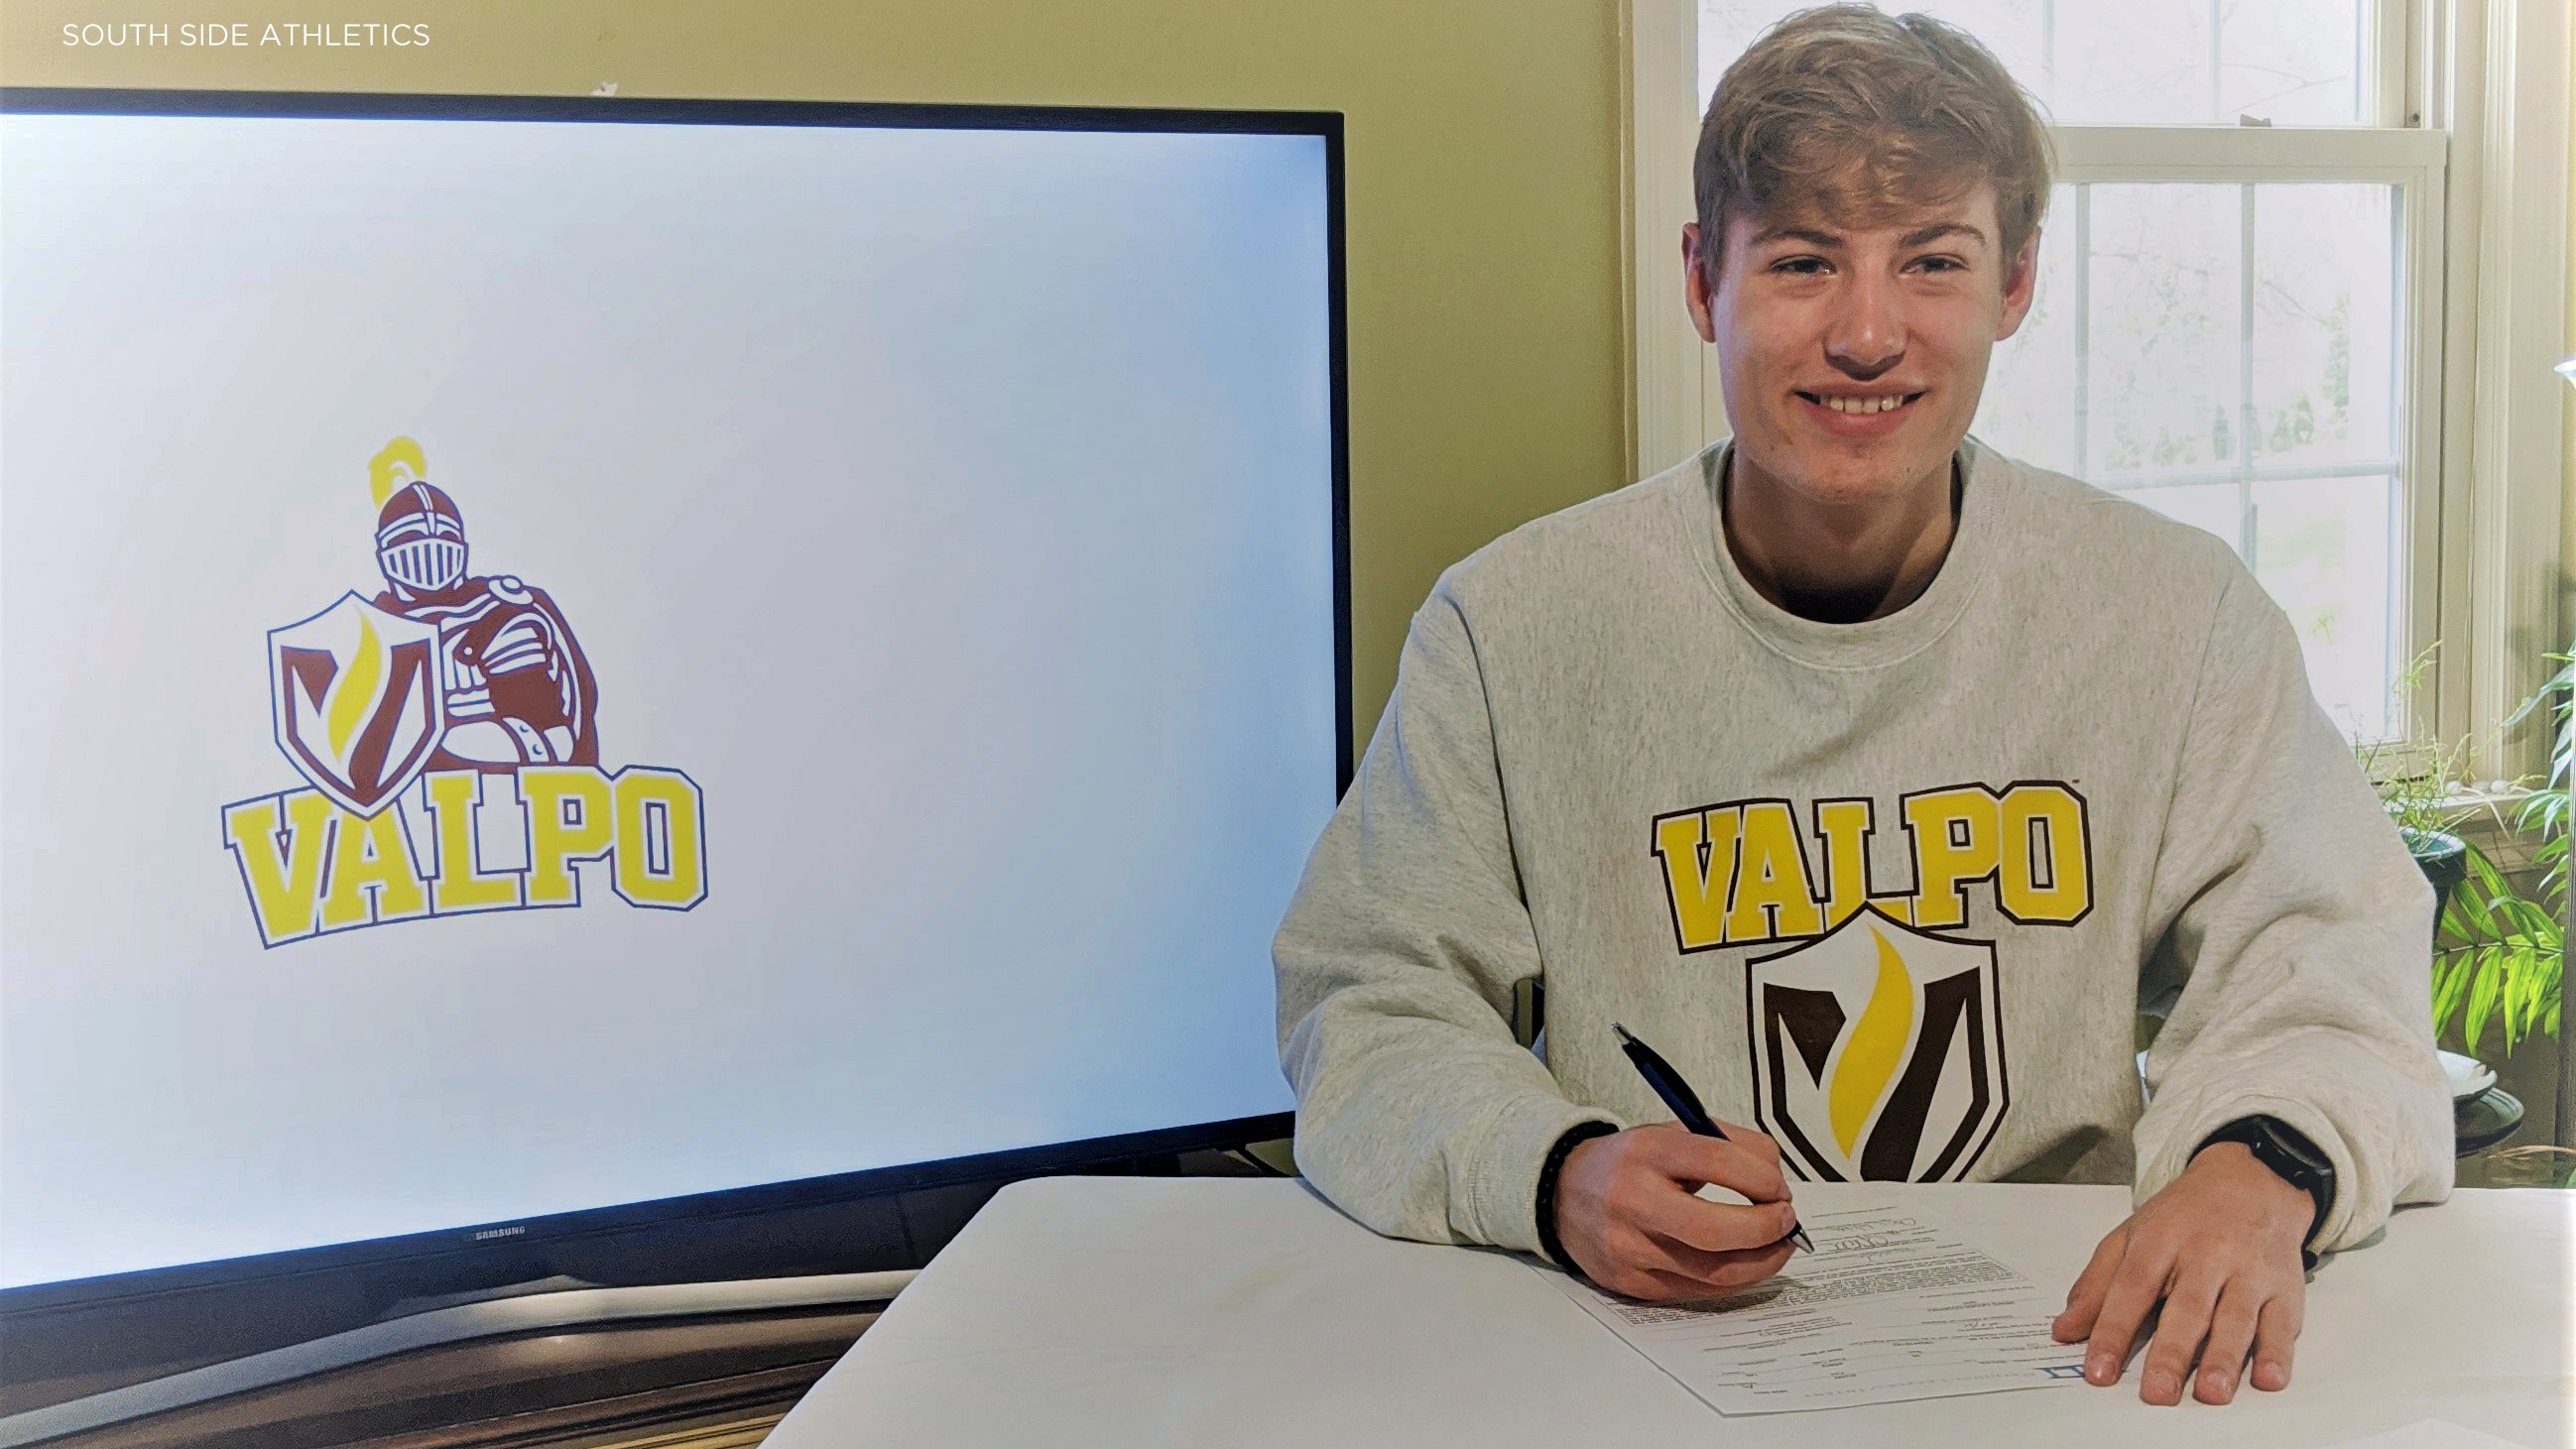 South Side's Evan Walda running at Valpo